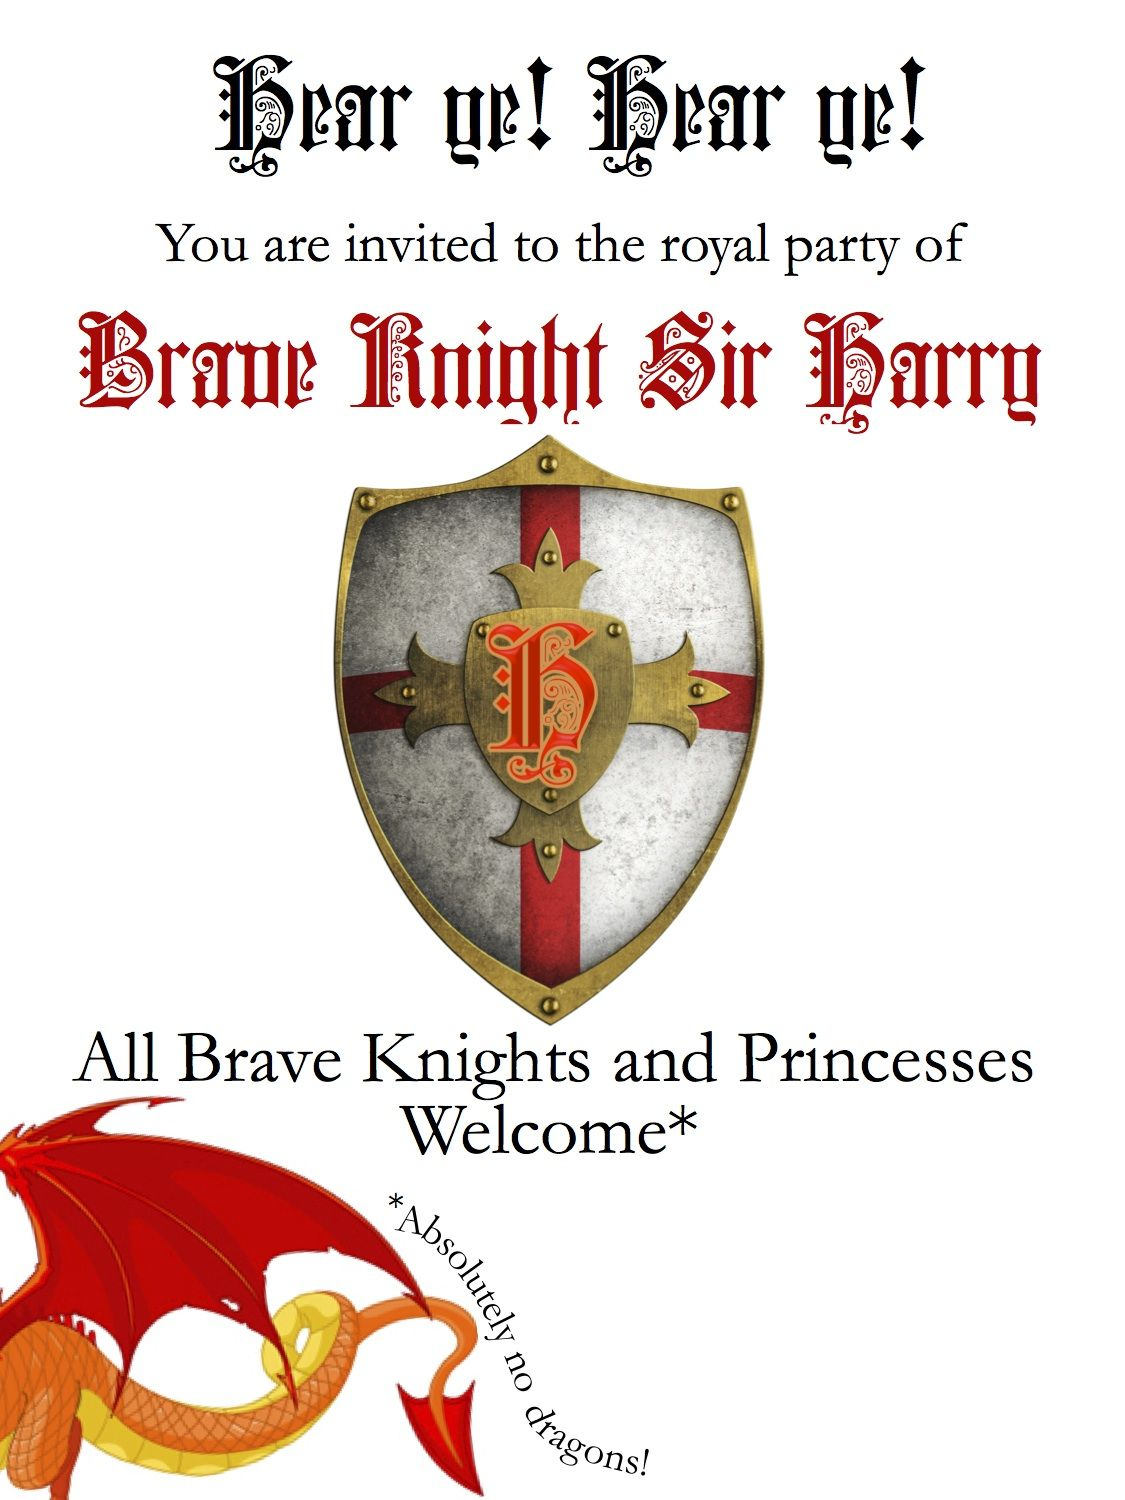 Knights Party Invitation | Party ideas | Pinterest | Knight, Party ...